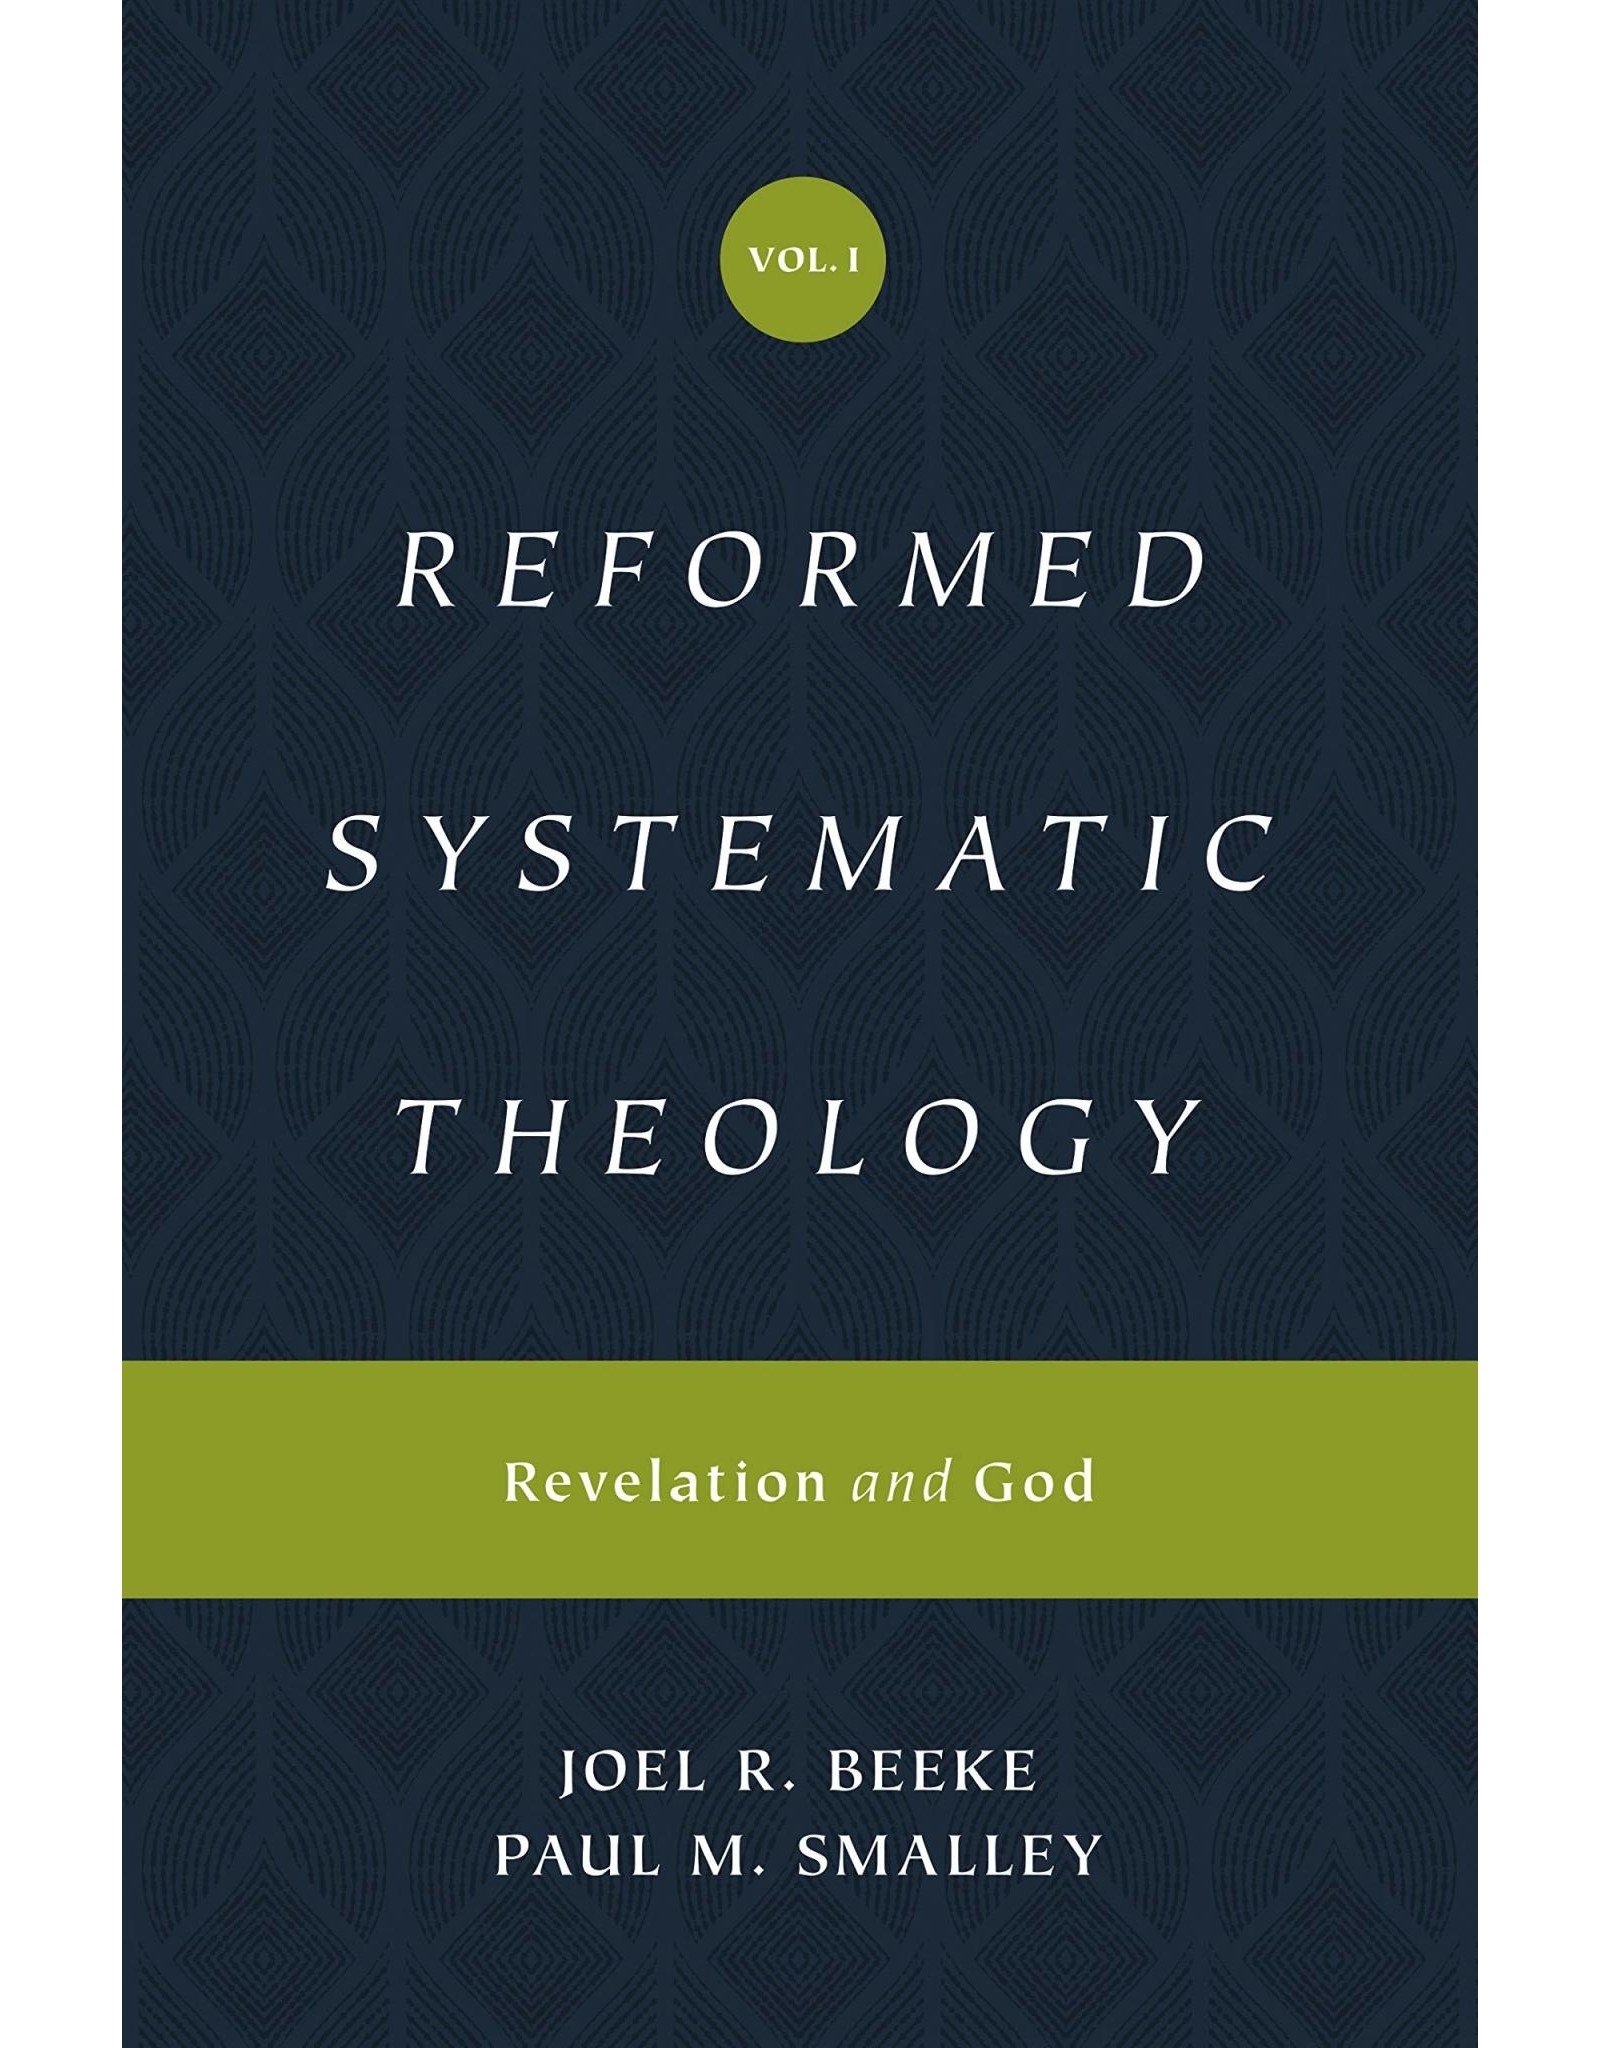 Crossway / Good News Reformed Systematic Theology, Volume 1: Revelation and God